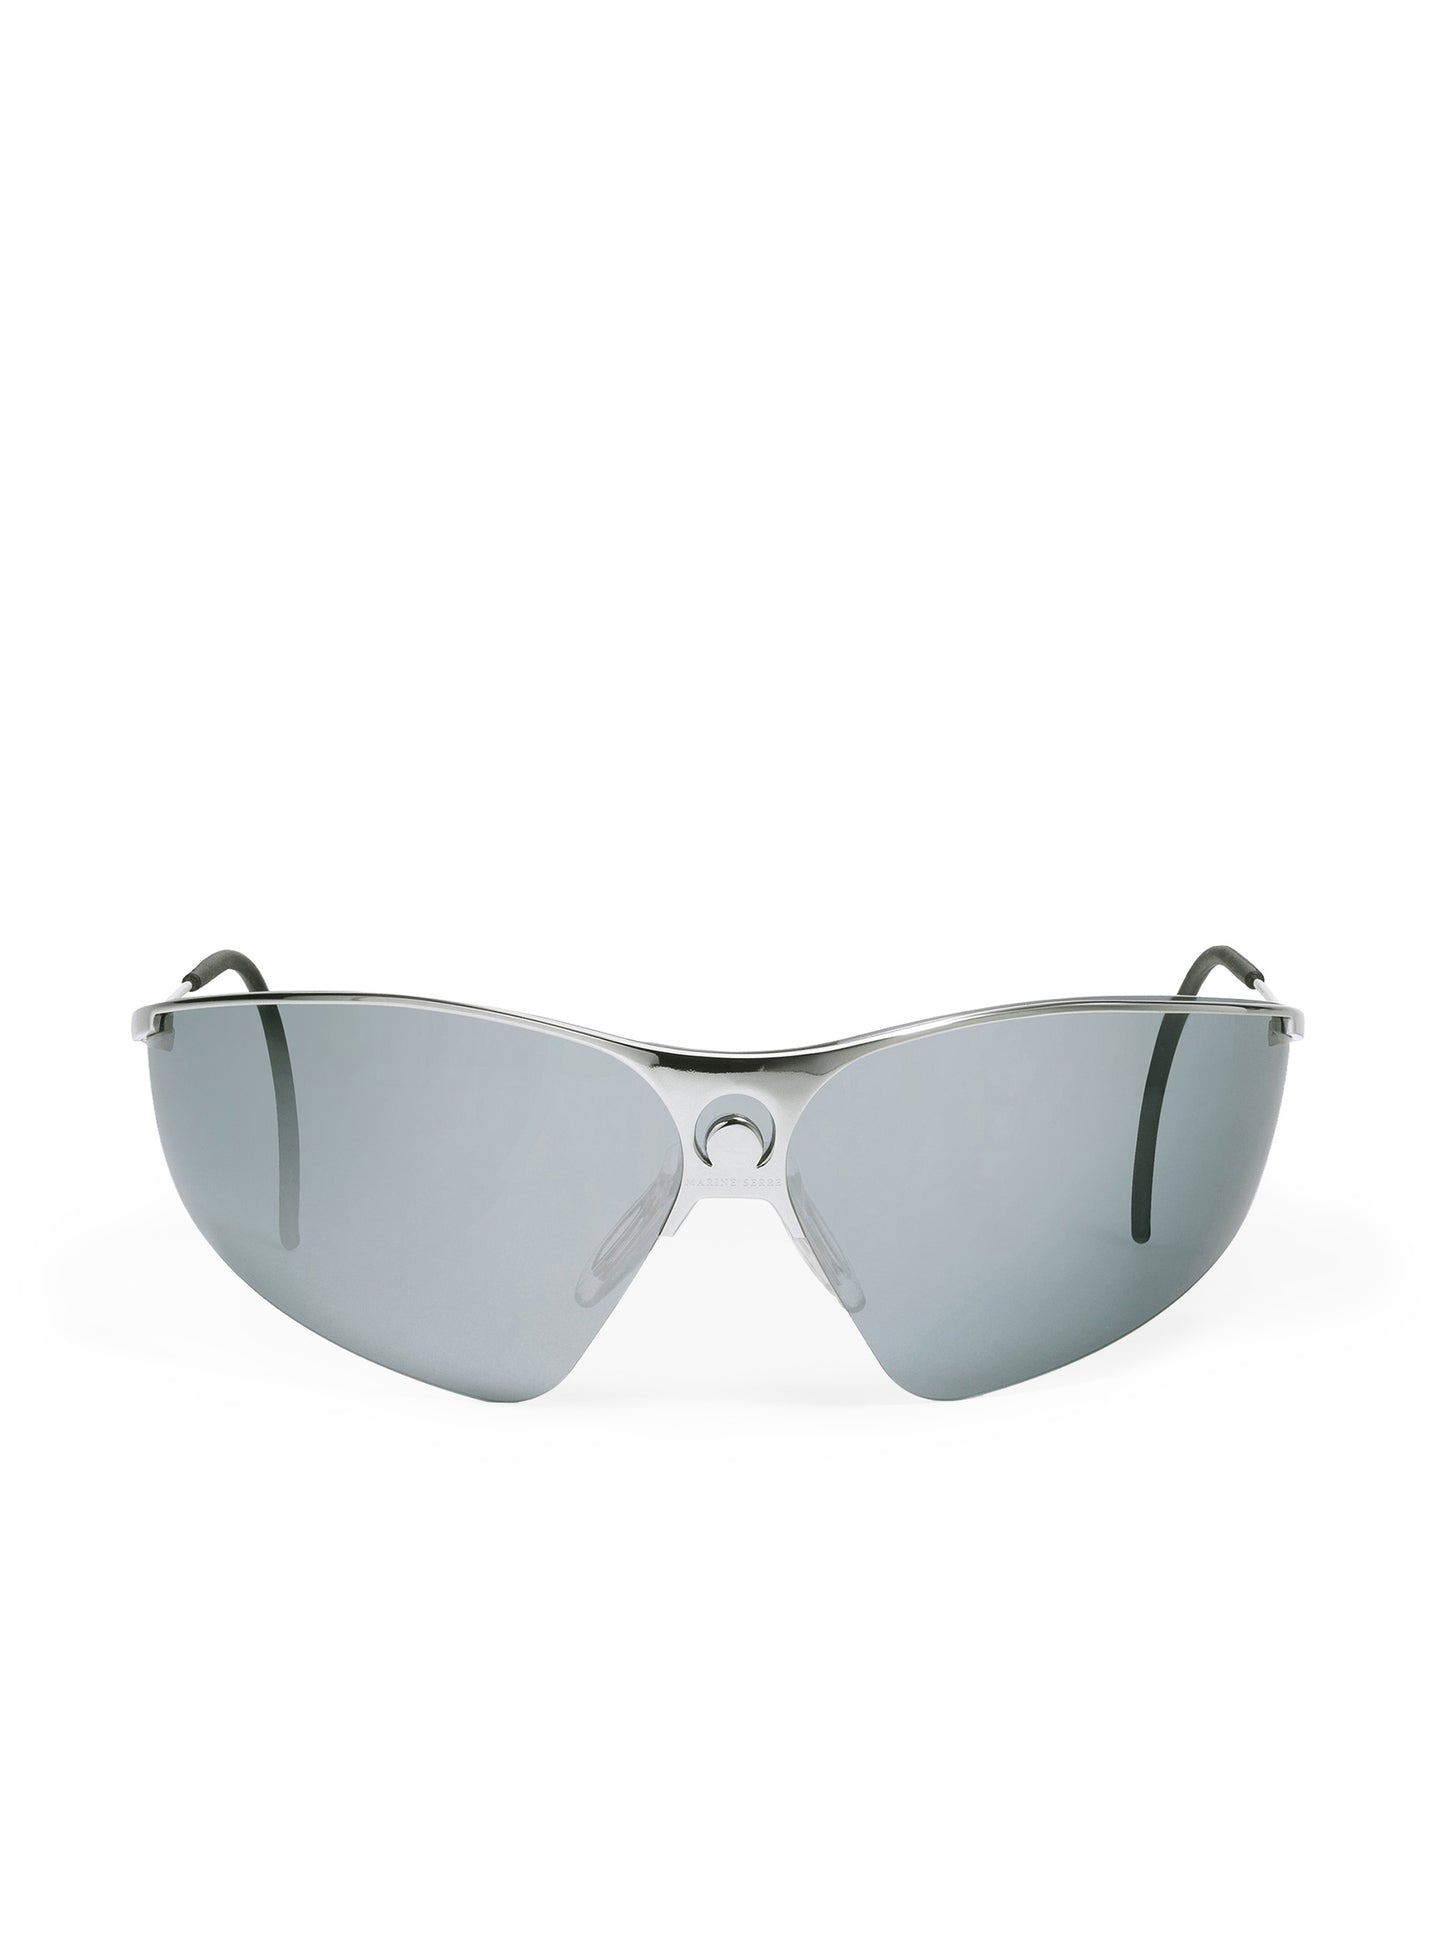 GM Metal Visor Tinted Glasses Silver